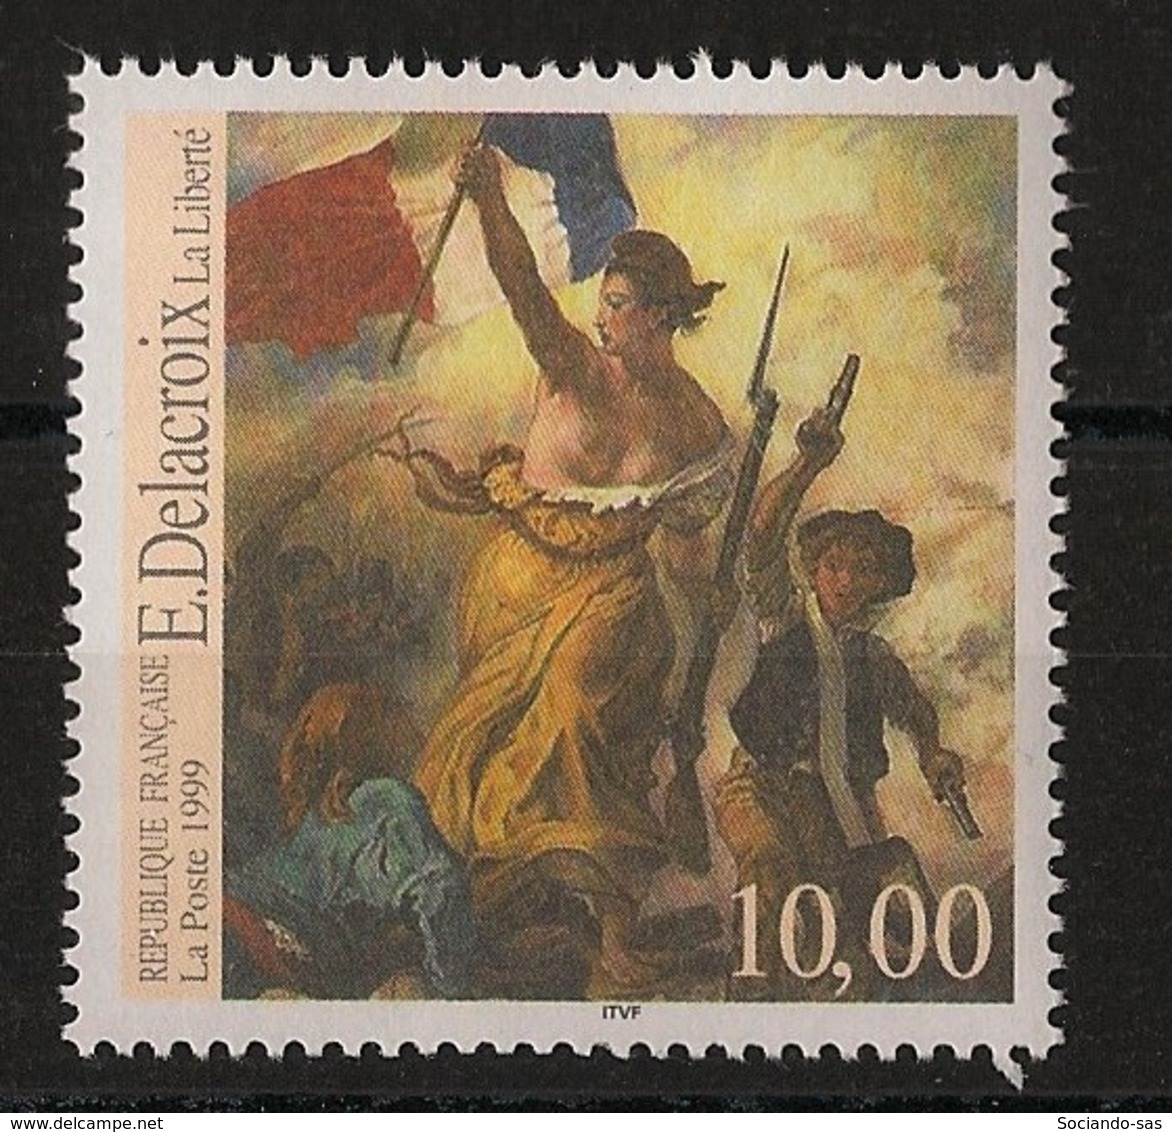 France - 1999 - N°Yv. 3236 - Liberté / Delacroix - Neuf Luxe ** / MNH / Postfrisch - Unused Stamps